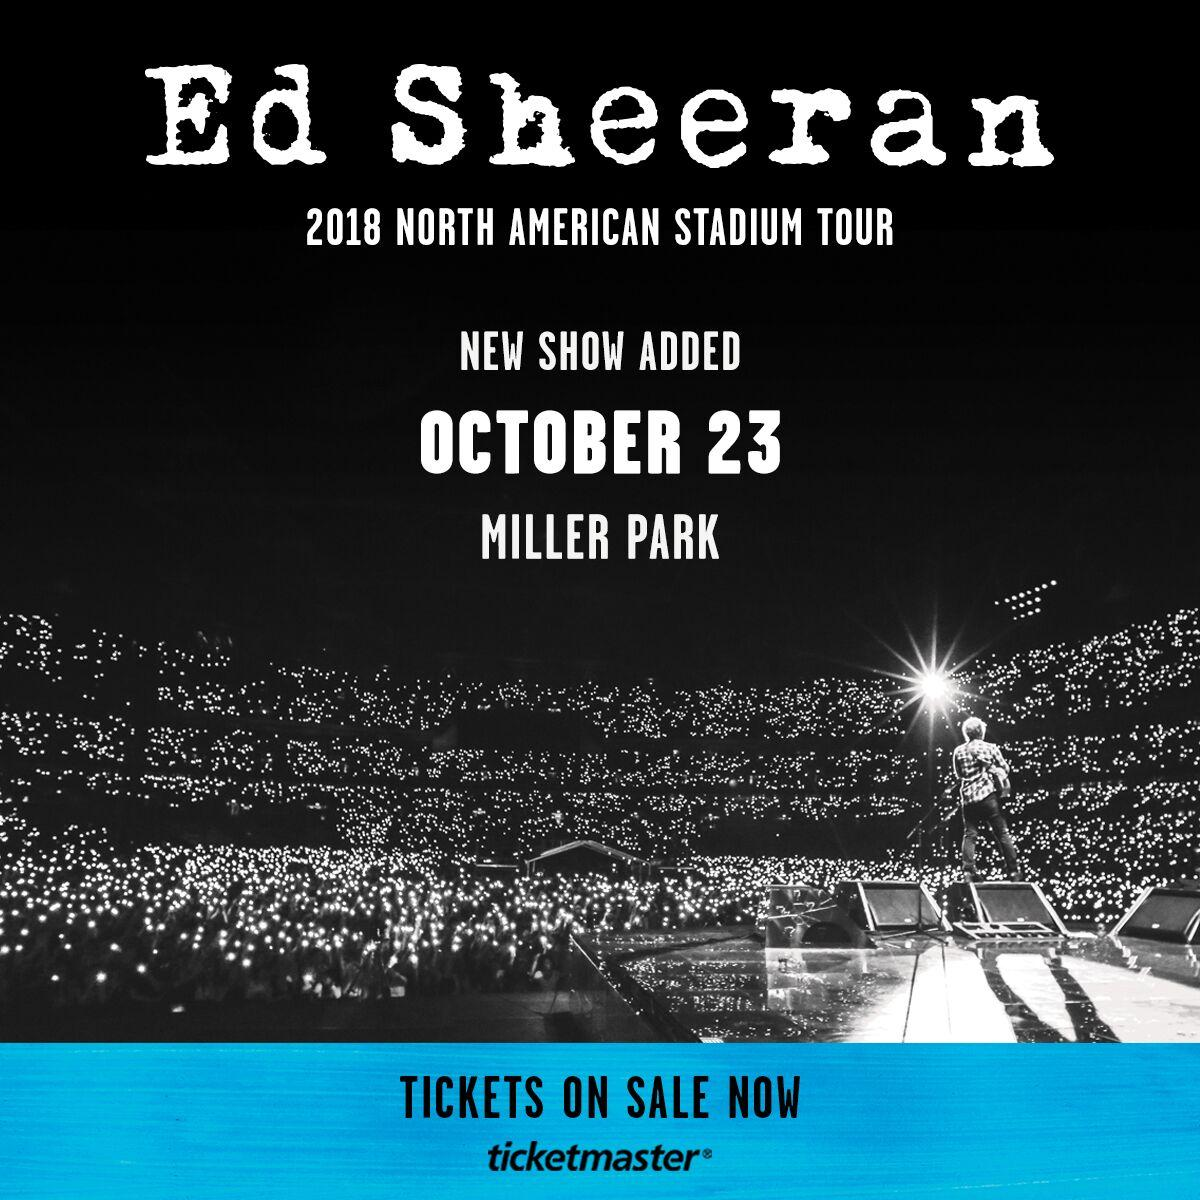 Tickets are on sale now for Ed Sheeran's show at Miller ...